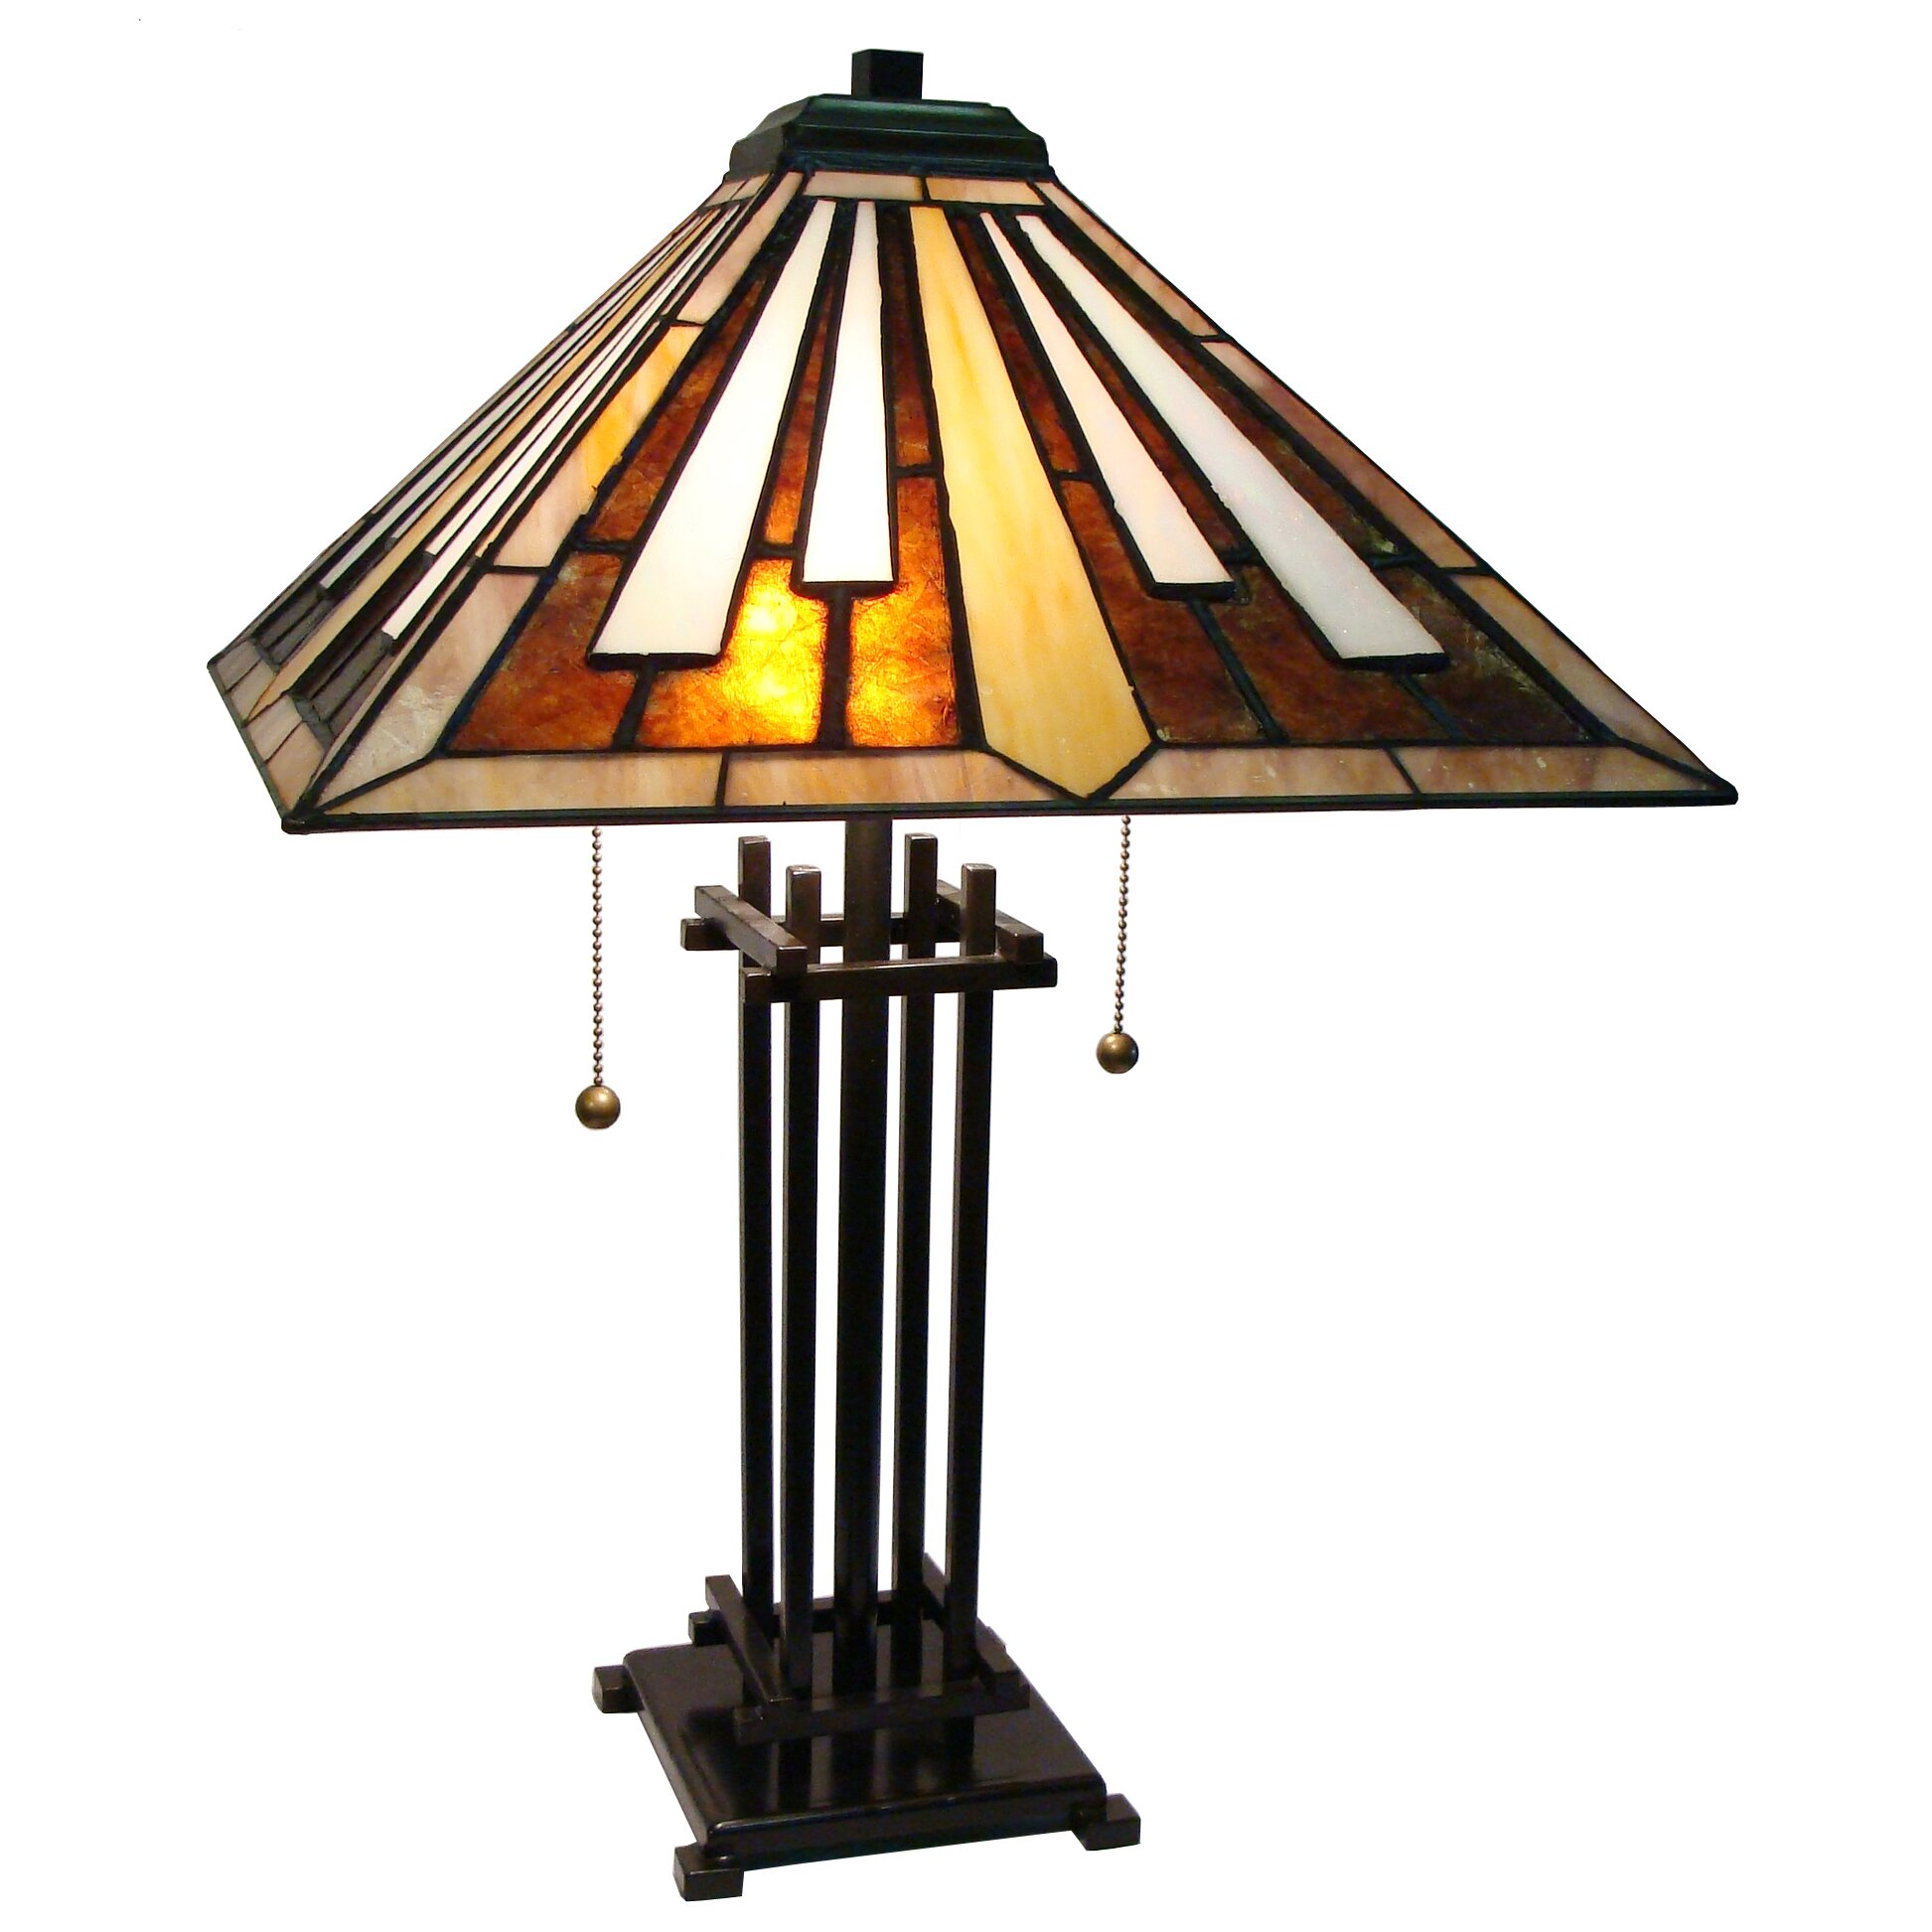 Fine table lamps images coffee table design ideas drawing of table lamp best inspiration for table lamp brown table lamps fine art lighting sku geotapseo Gallery